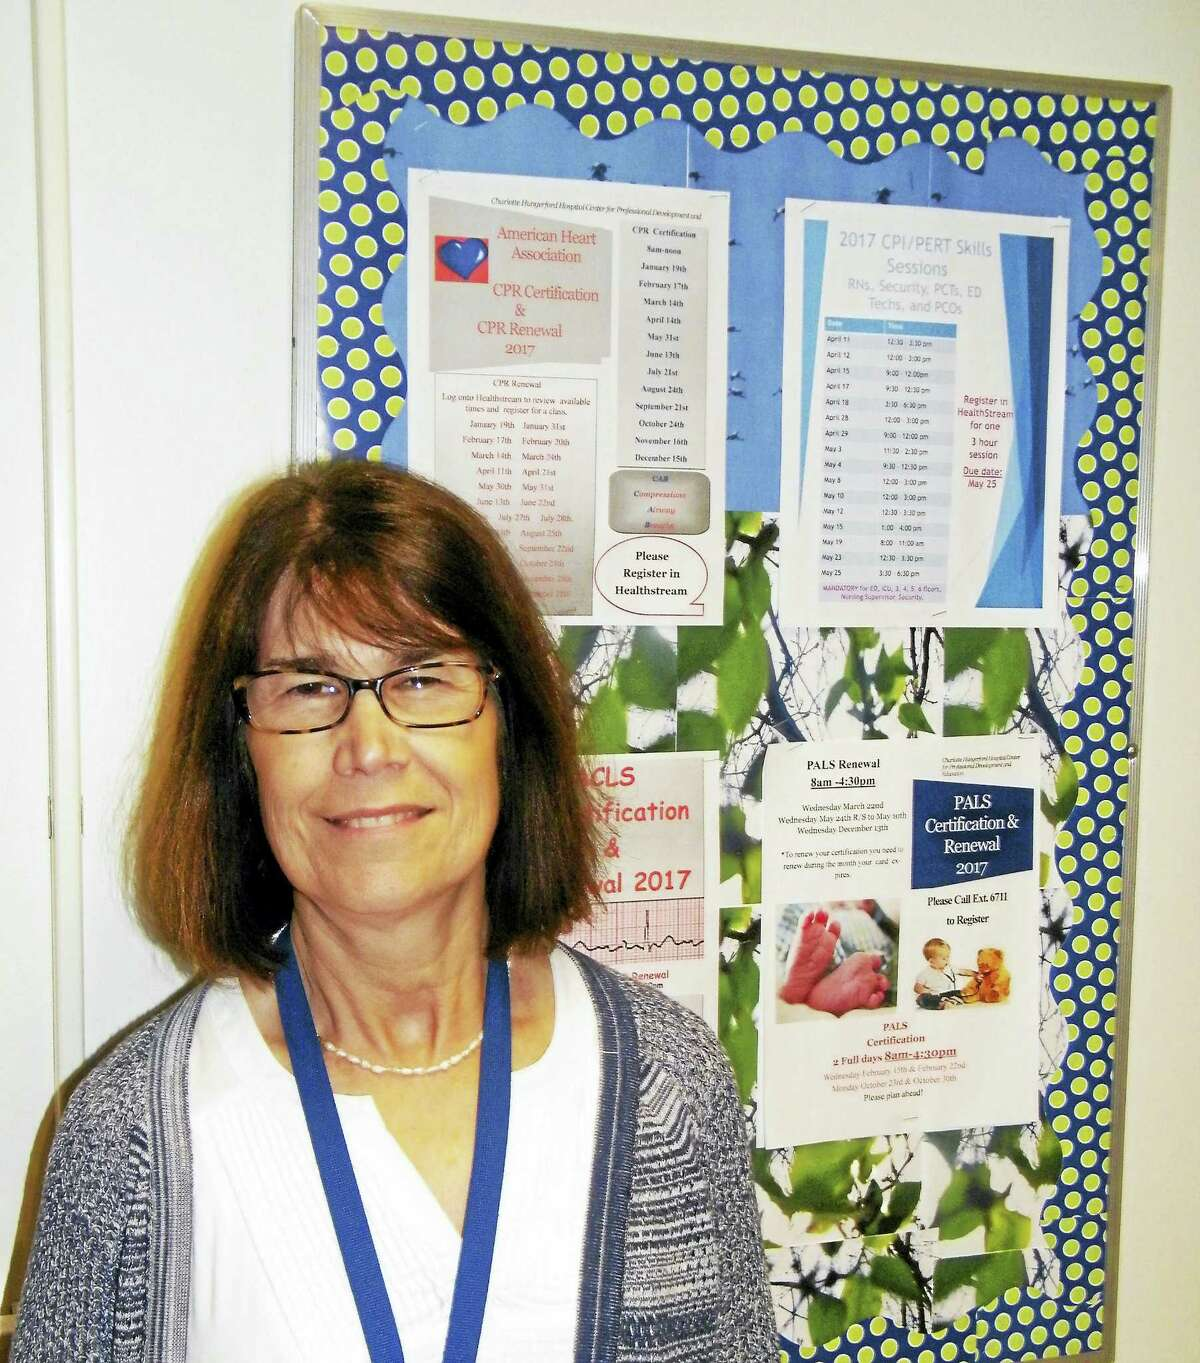 Charlotte Hungerford Hospital Nursing Education Specialist Debra Fisher, MA, RN, CCRN, recently received a 2017 Nightingale Award for Excellence in Nursing.